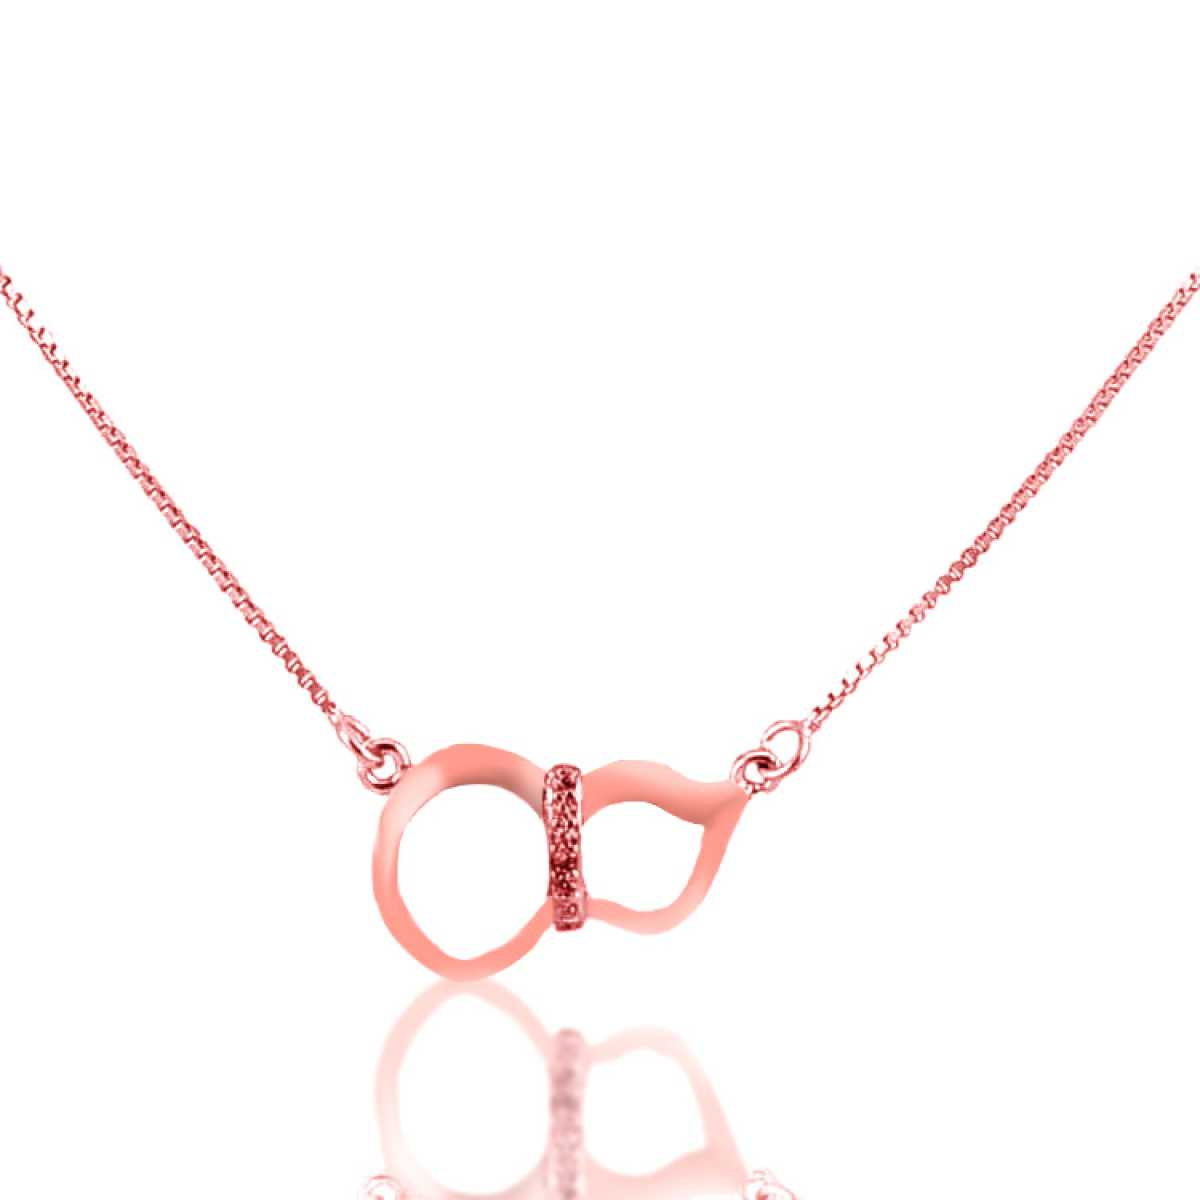 Eight Rose-Gold Sterling Silver  Chain